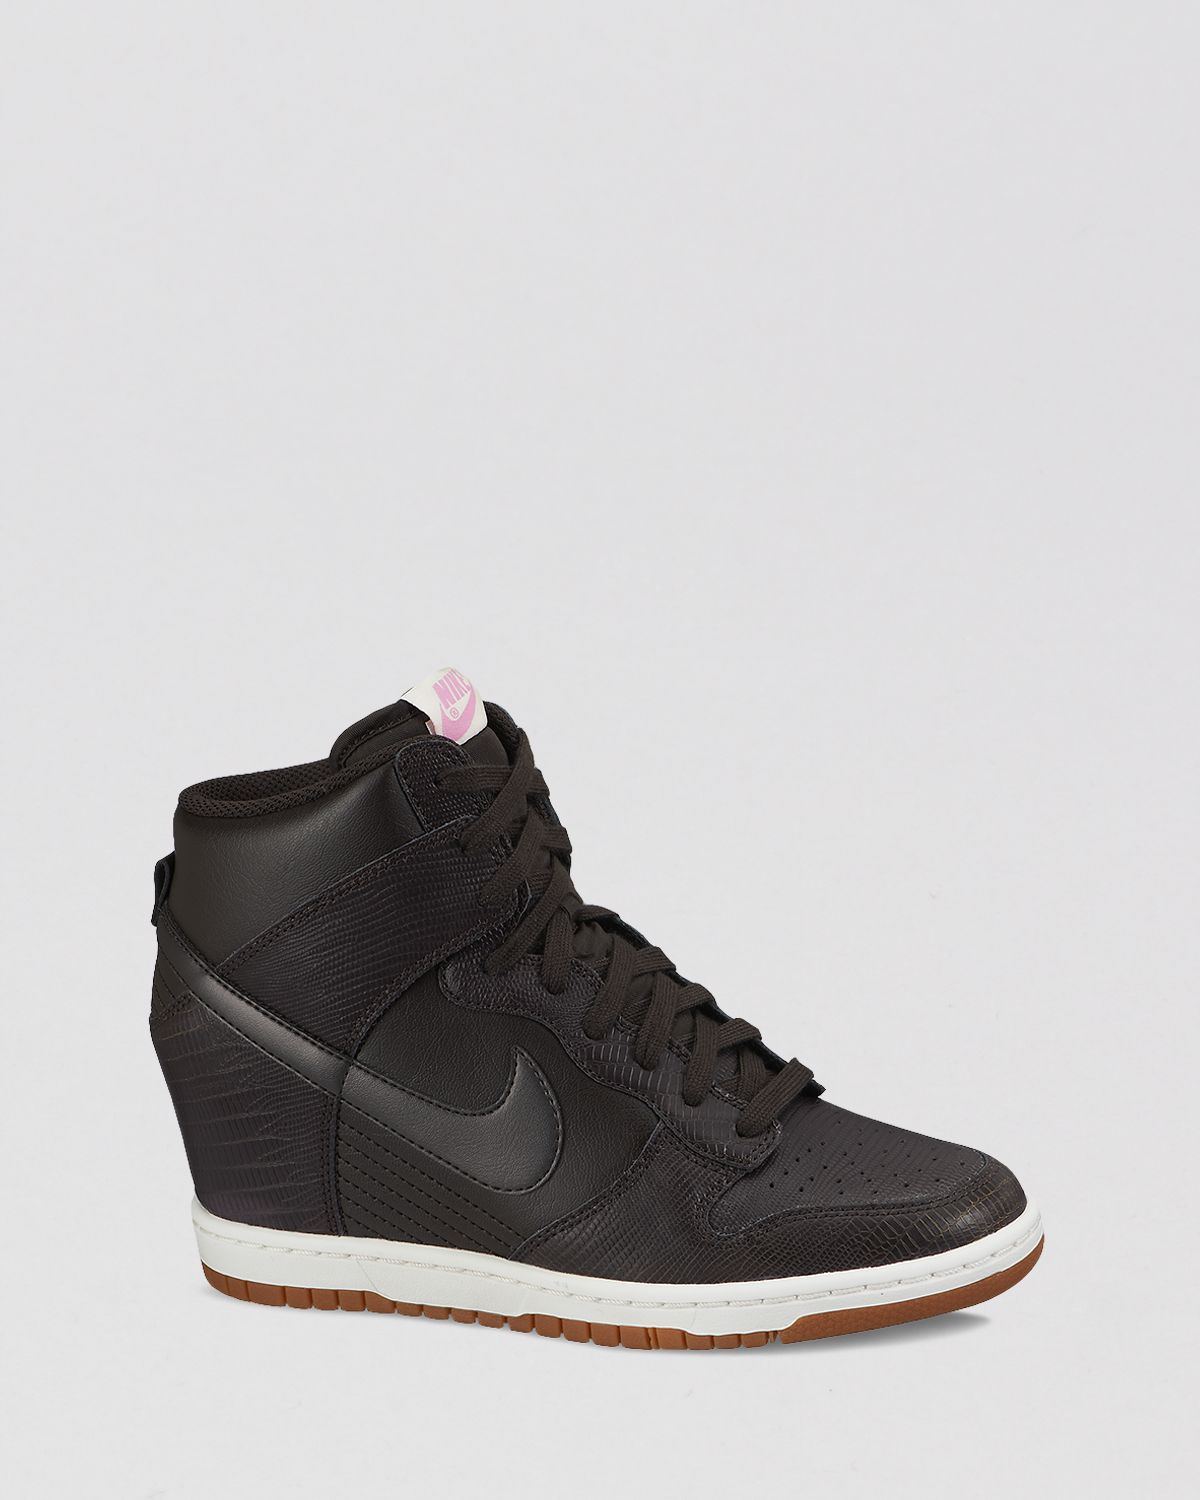 premium selection 266fc 104ce Previously sold at  Bloomingdale s · Women s Nike Dunk Sky Hi Women s Nike  Dunk ...